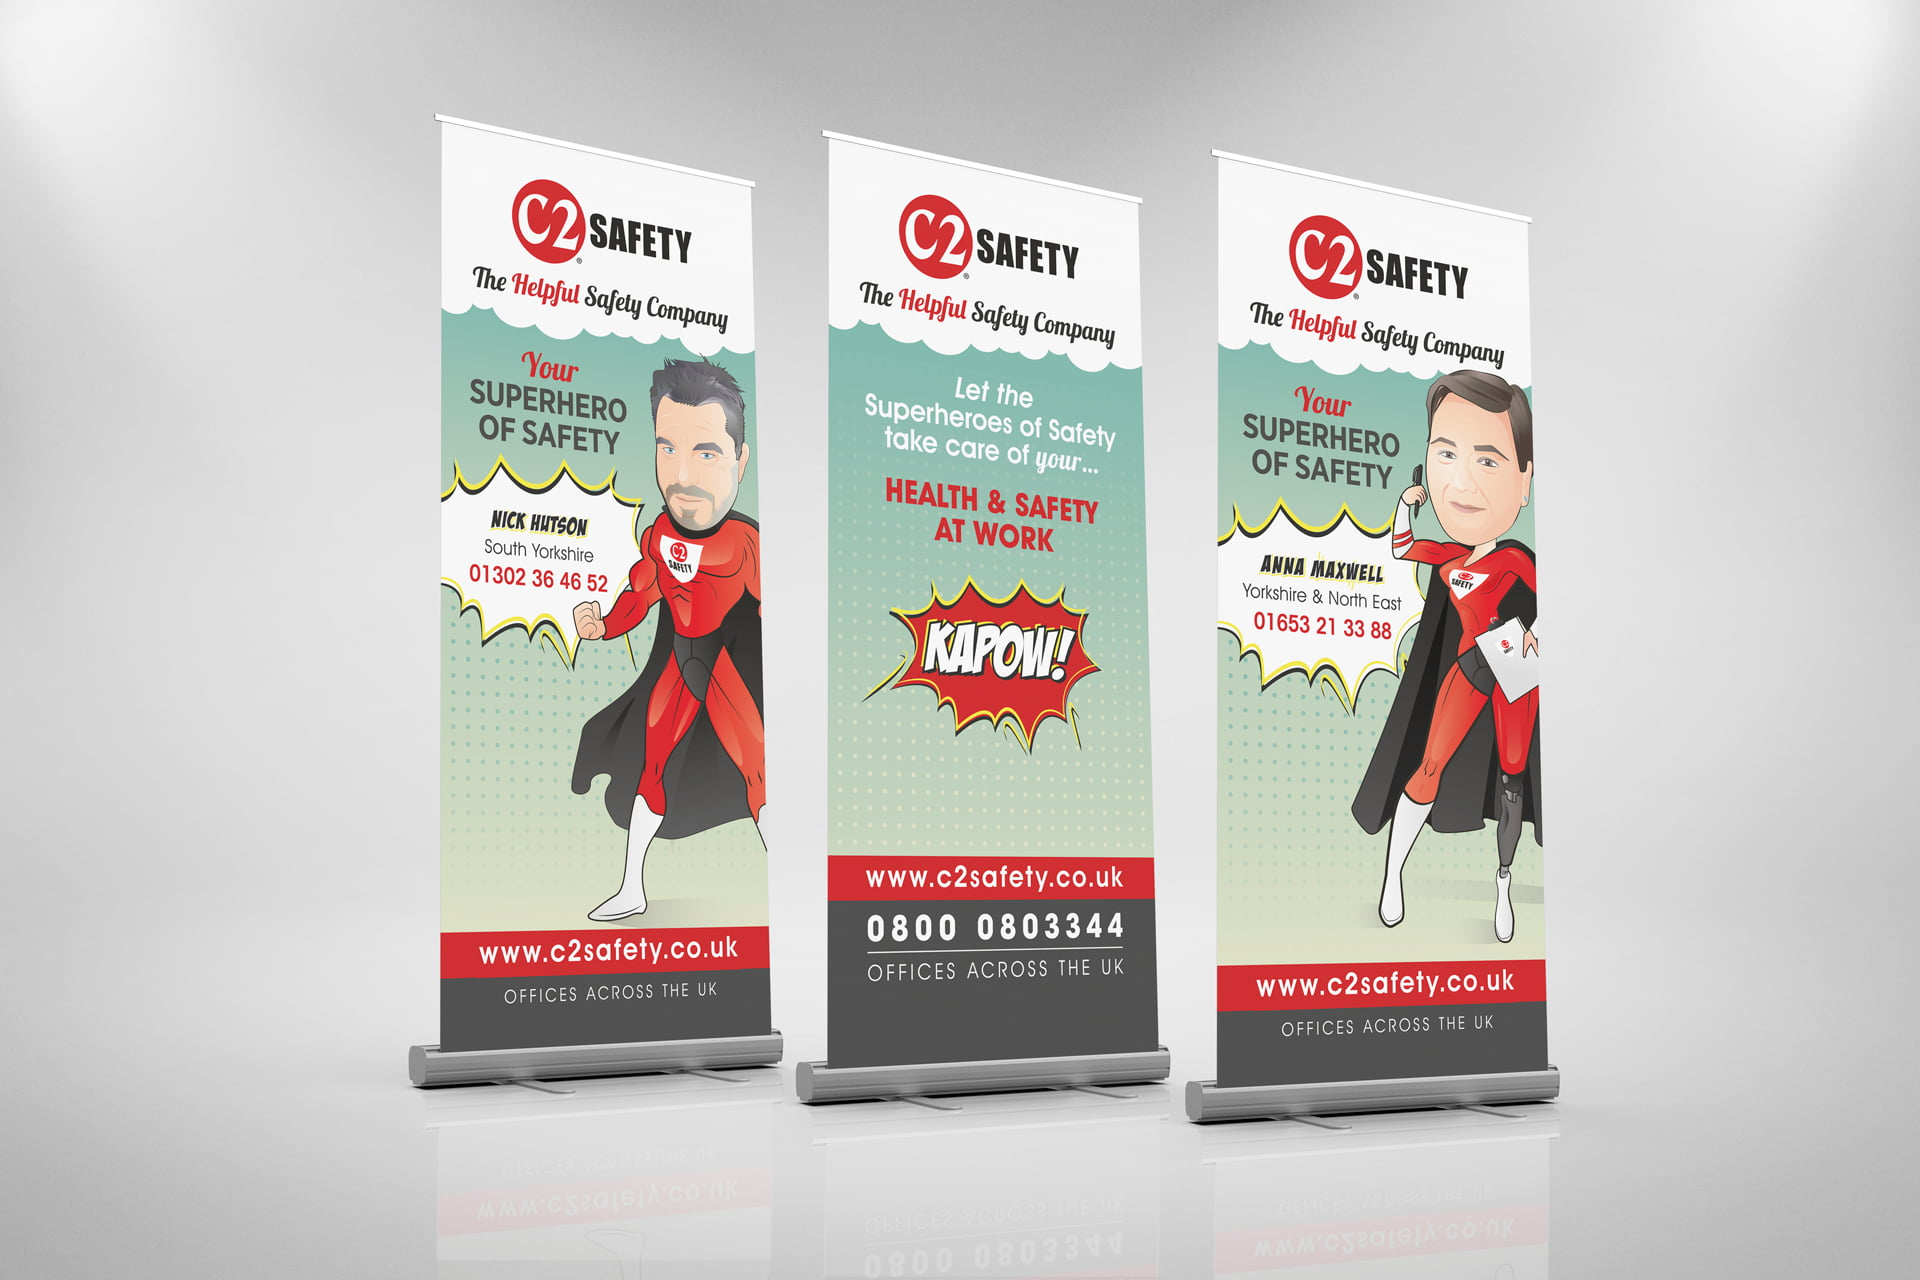 pullup-banner-design-highbridge-somerset